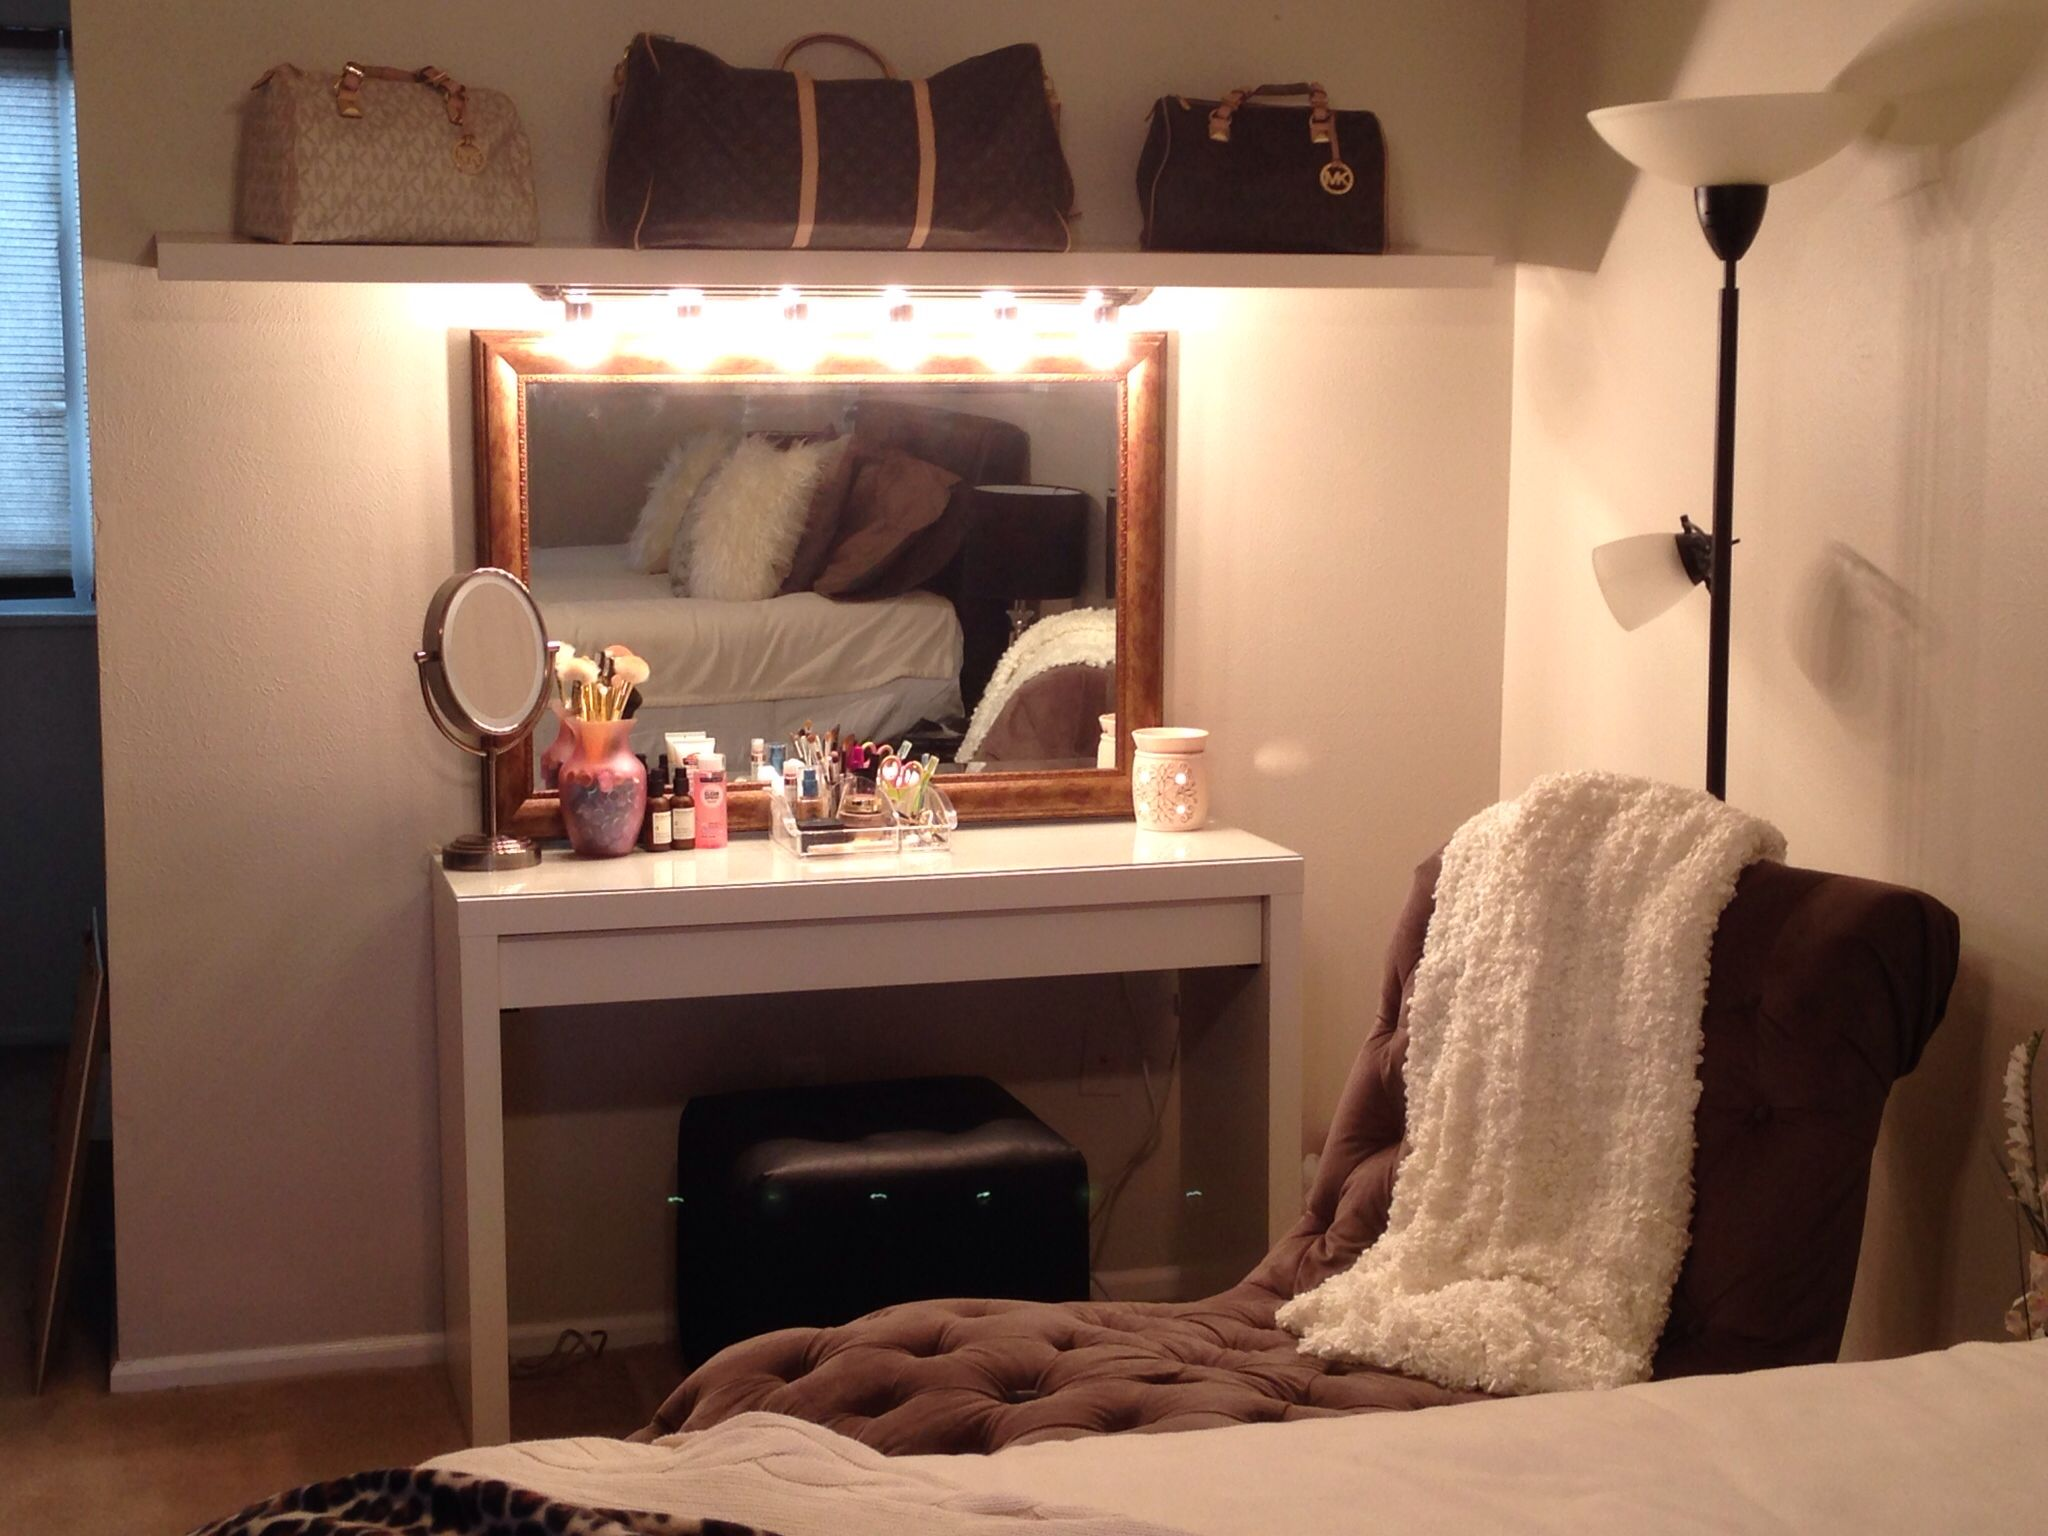 DIY makeup vanity - Malm dressing table with pull out drawer and self from IKEA. Vanity light ...